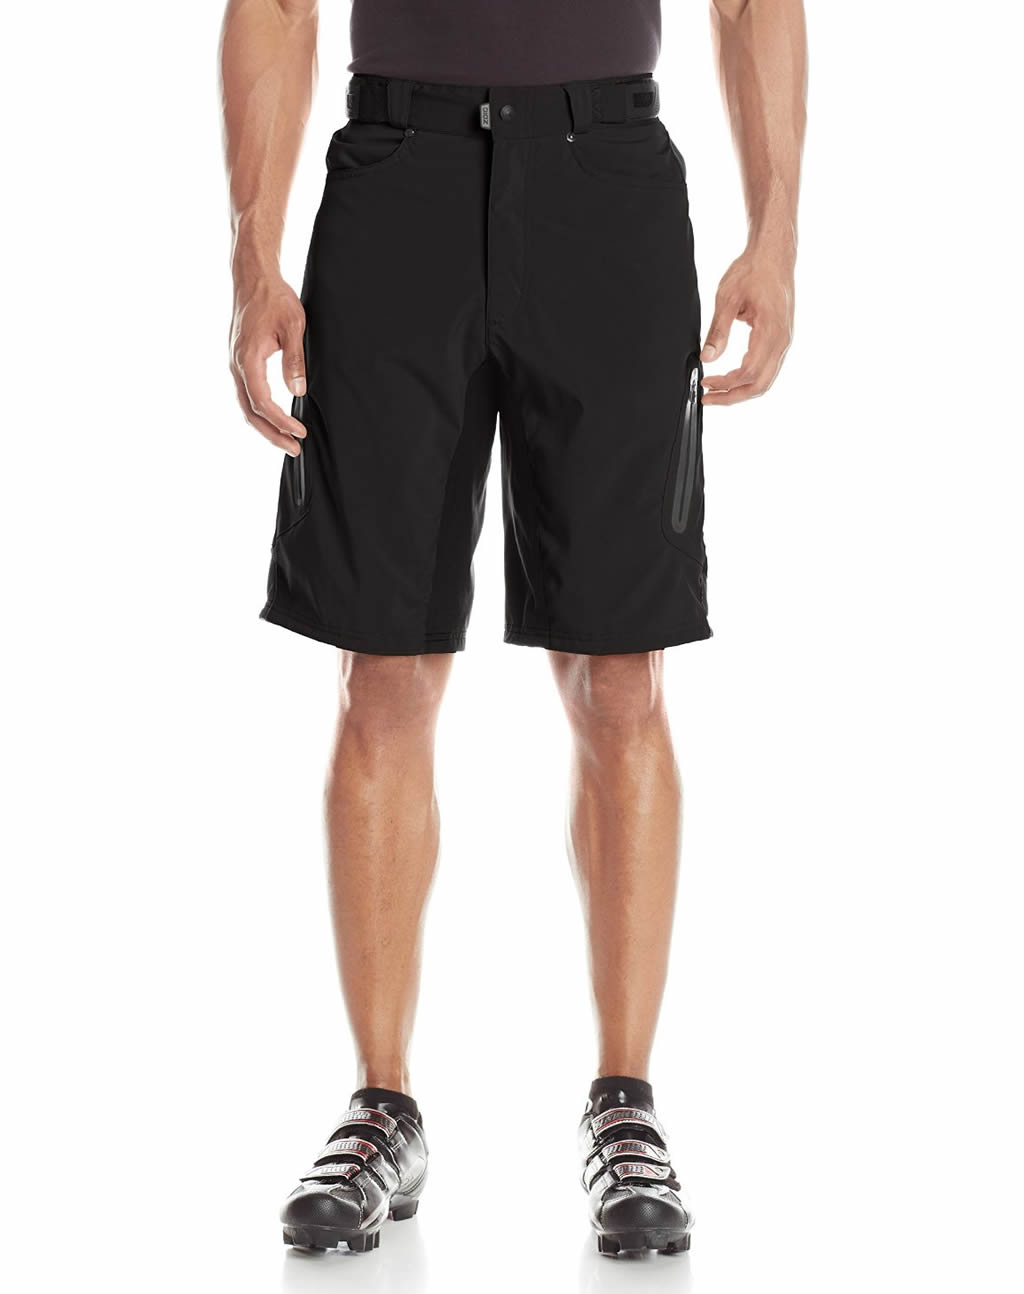 Awesome ZOIC Men's Ether Cycling Shorts